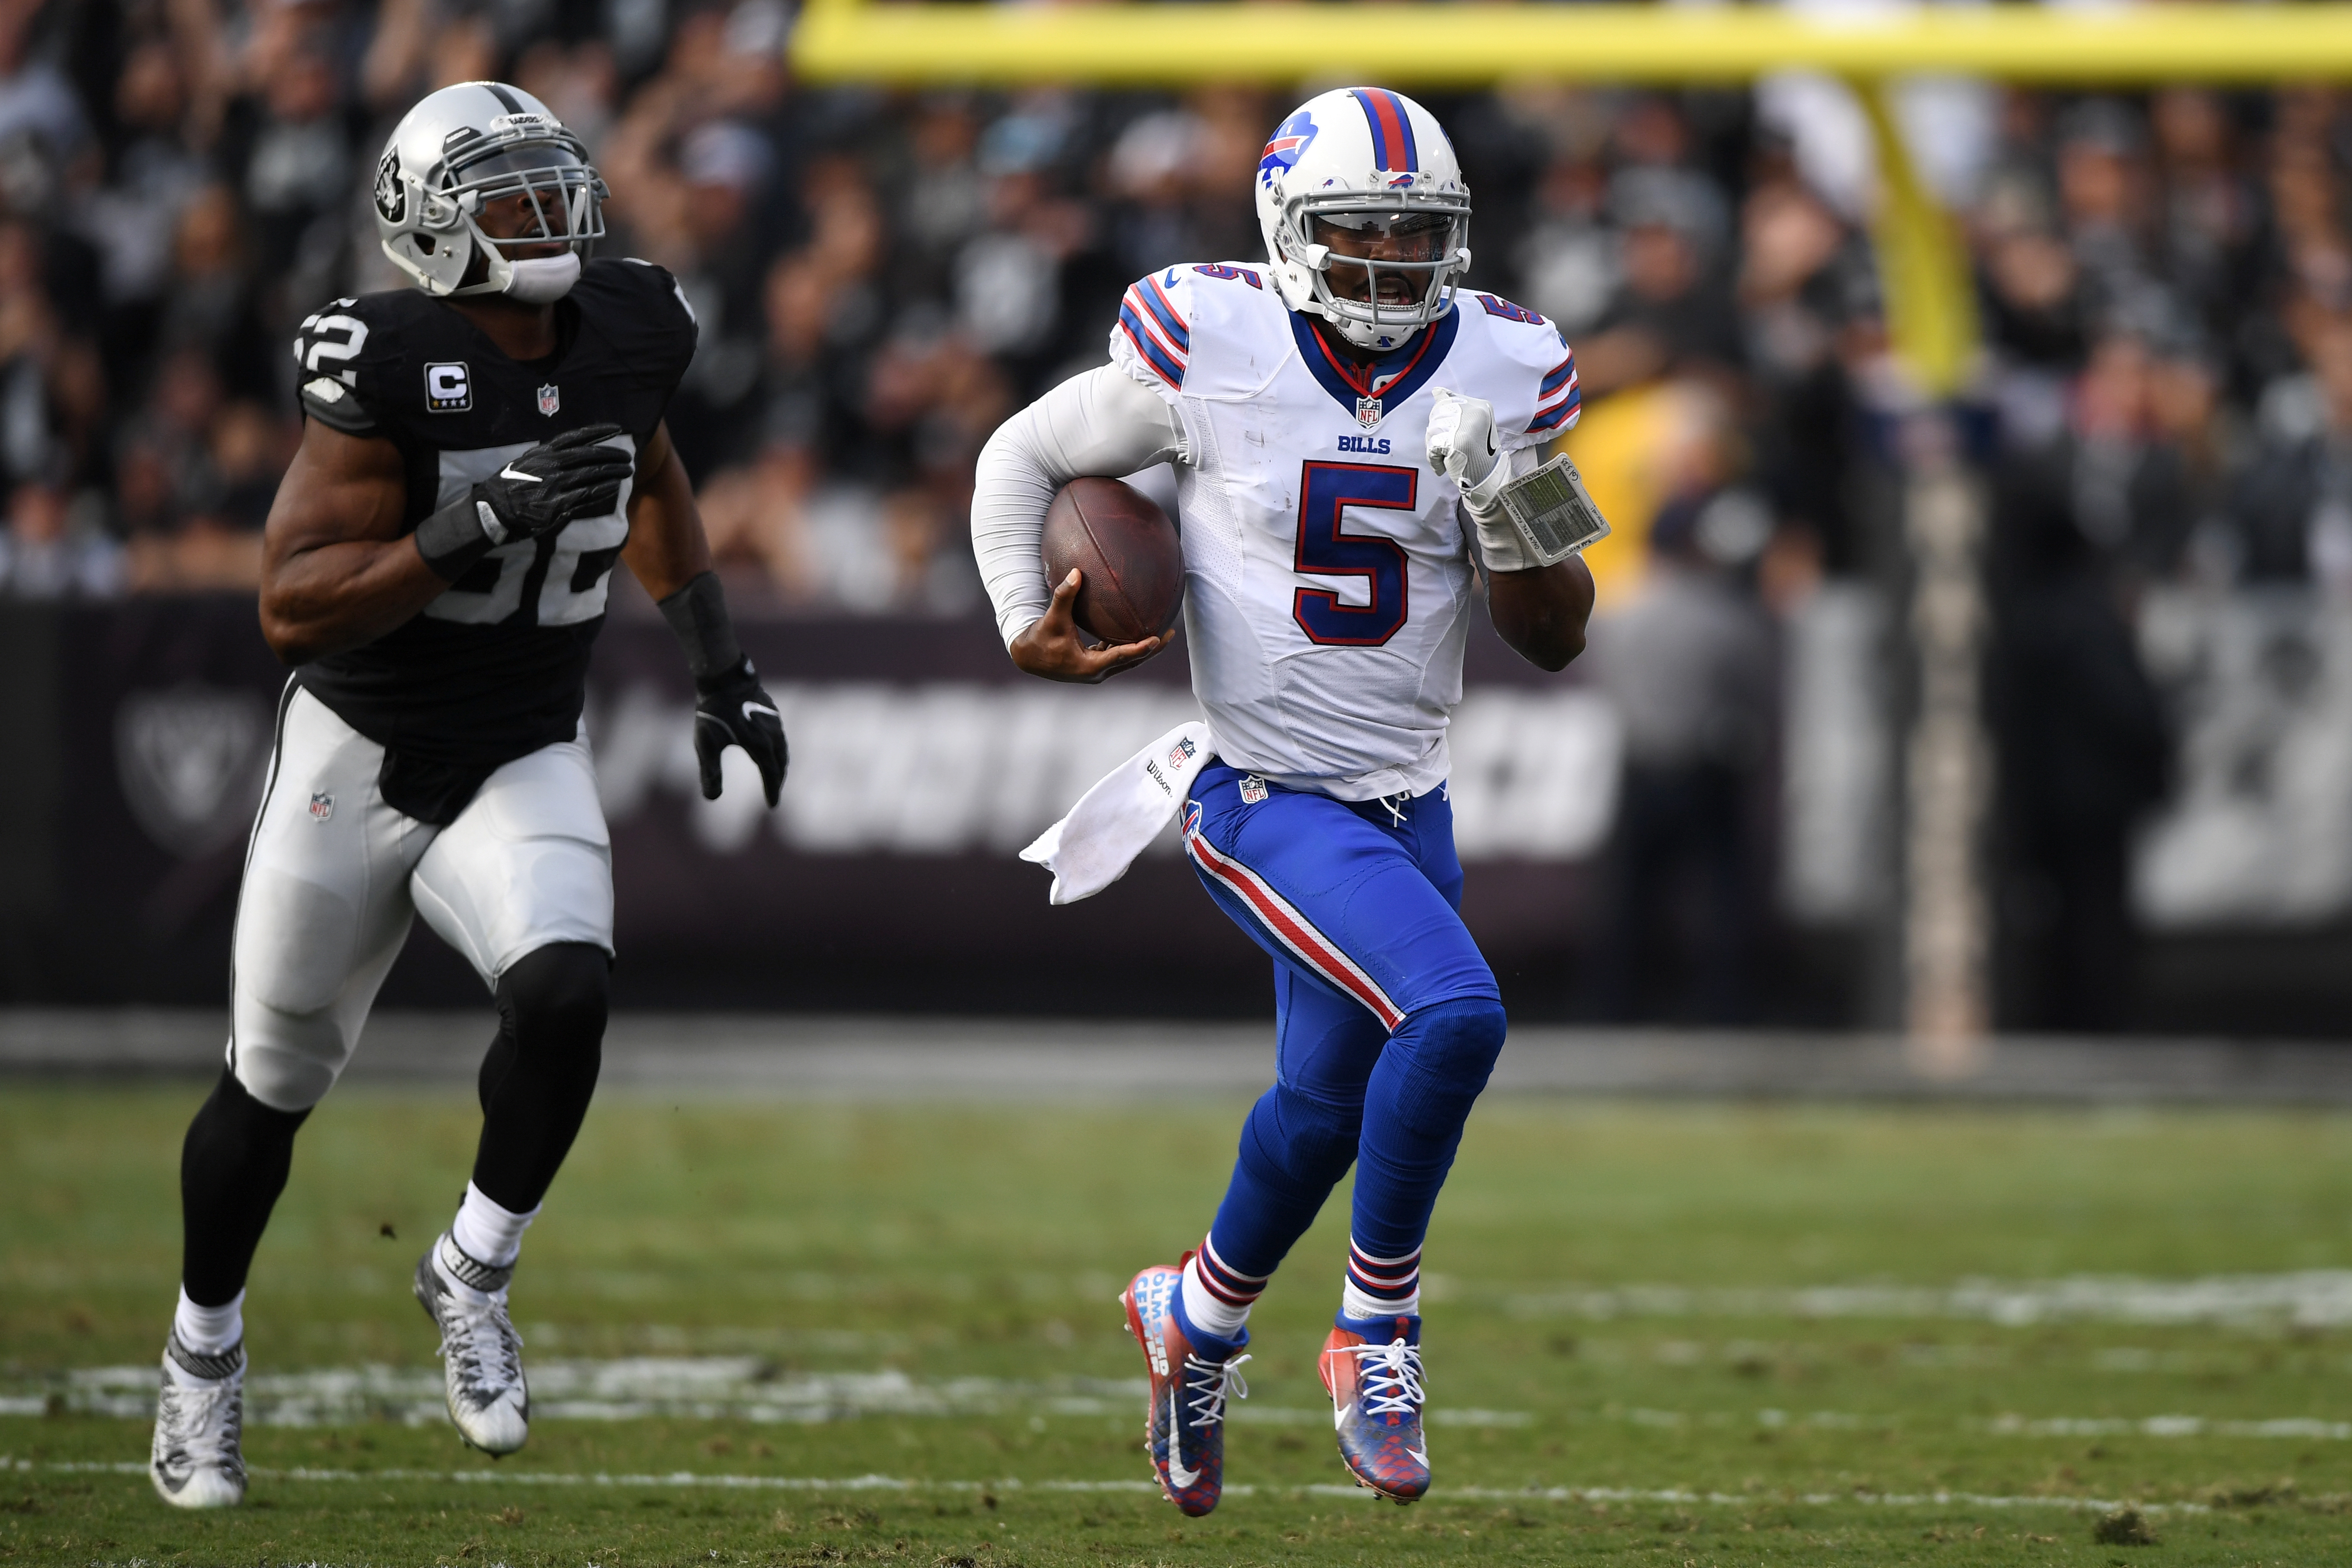 Tyrod Taylor runs as Khalil Mack is in pursuit. (Getty Images)